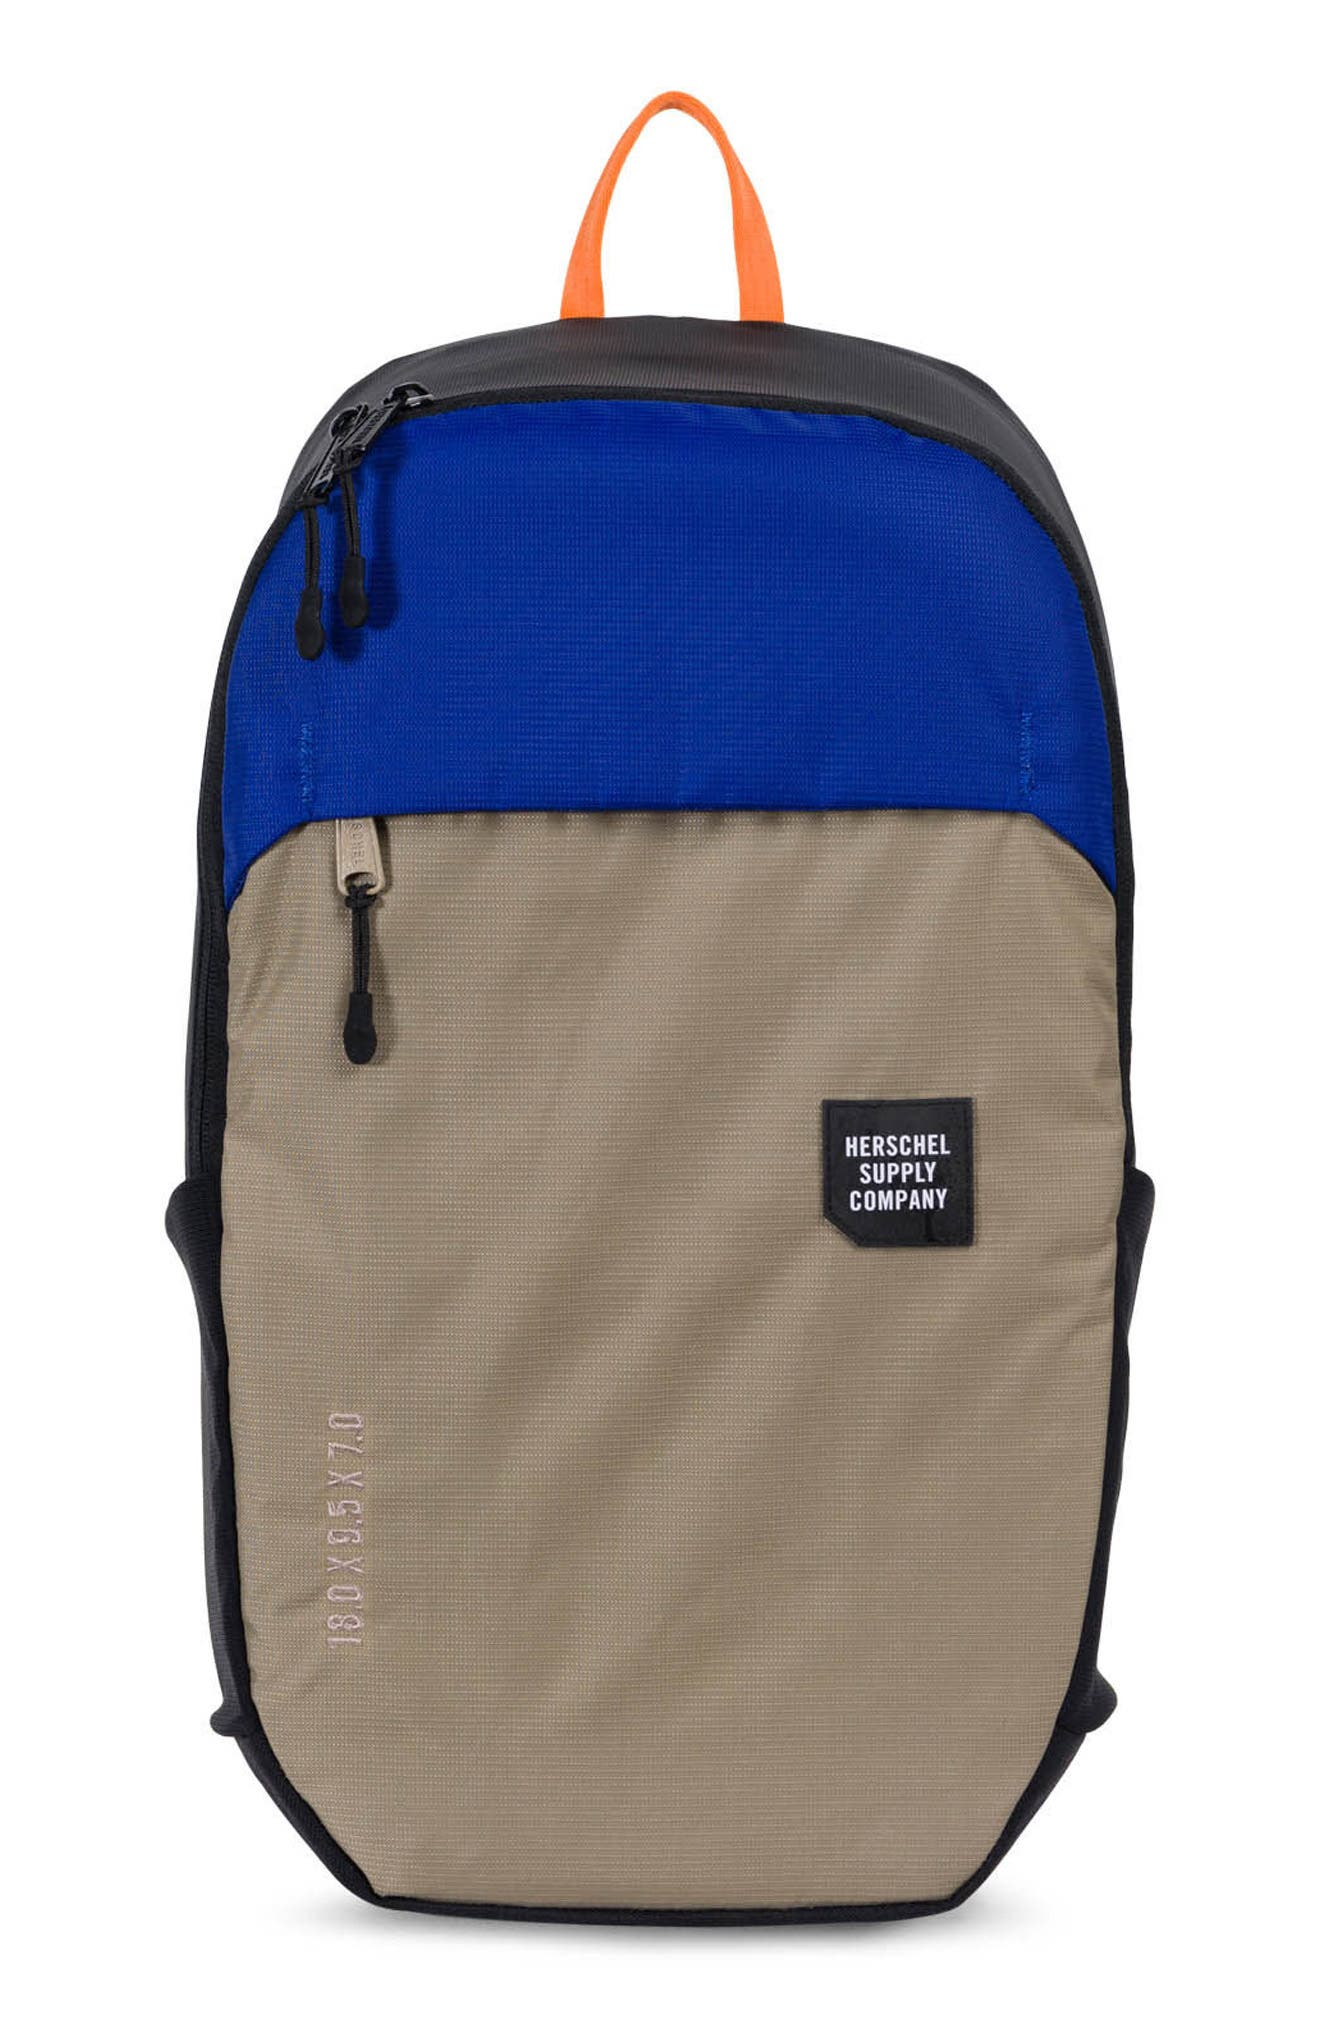 Mammoth Trail Collection Backpack,                             Main thumbnail 1, color,                             253